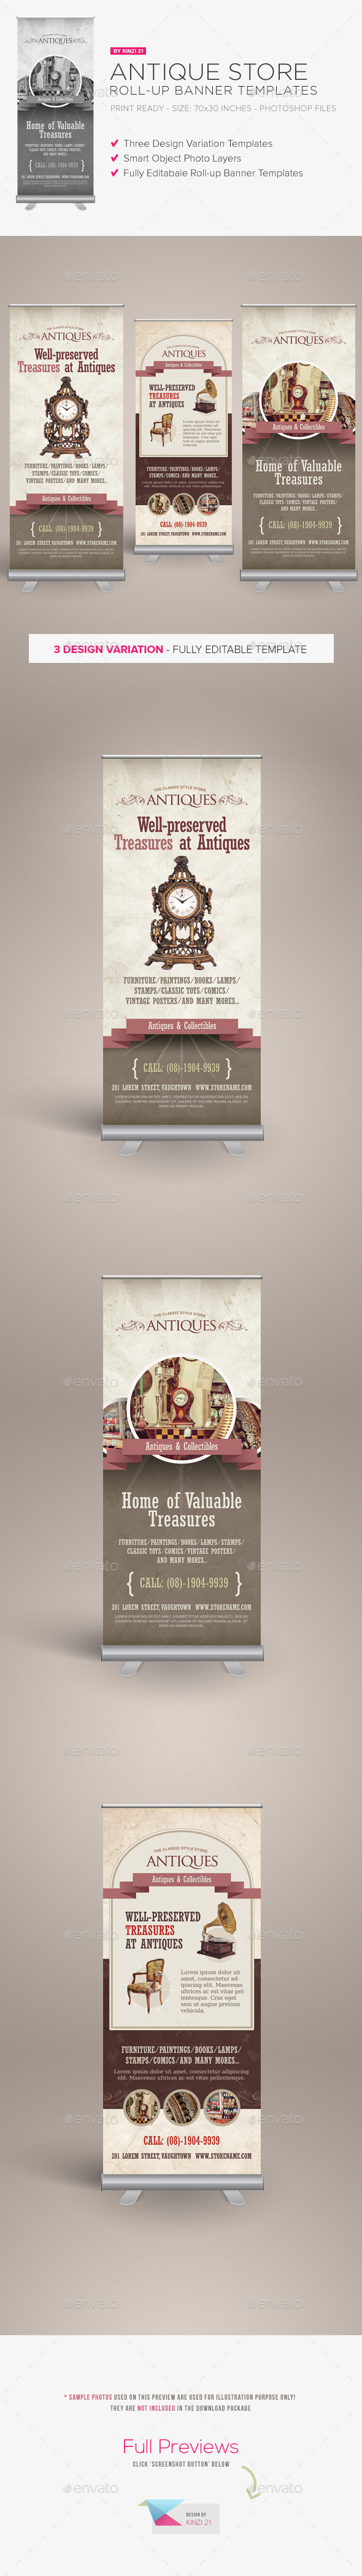 Antique Store Roll-up Banners - Signage Print Templates